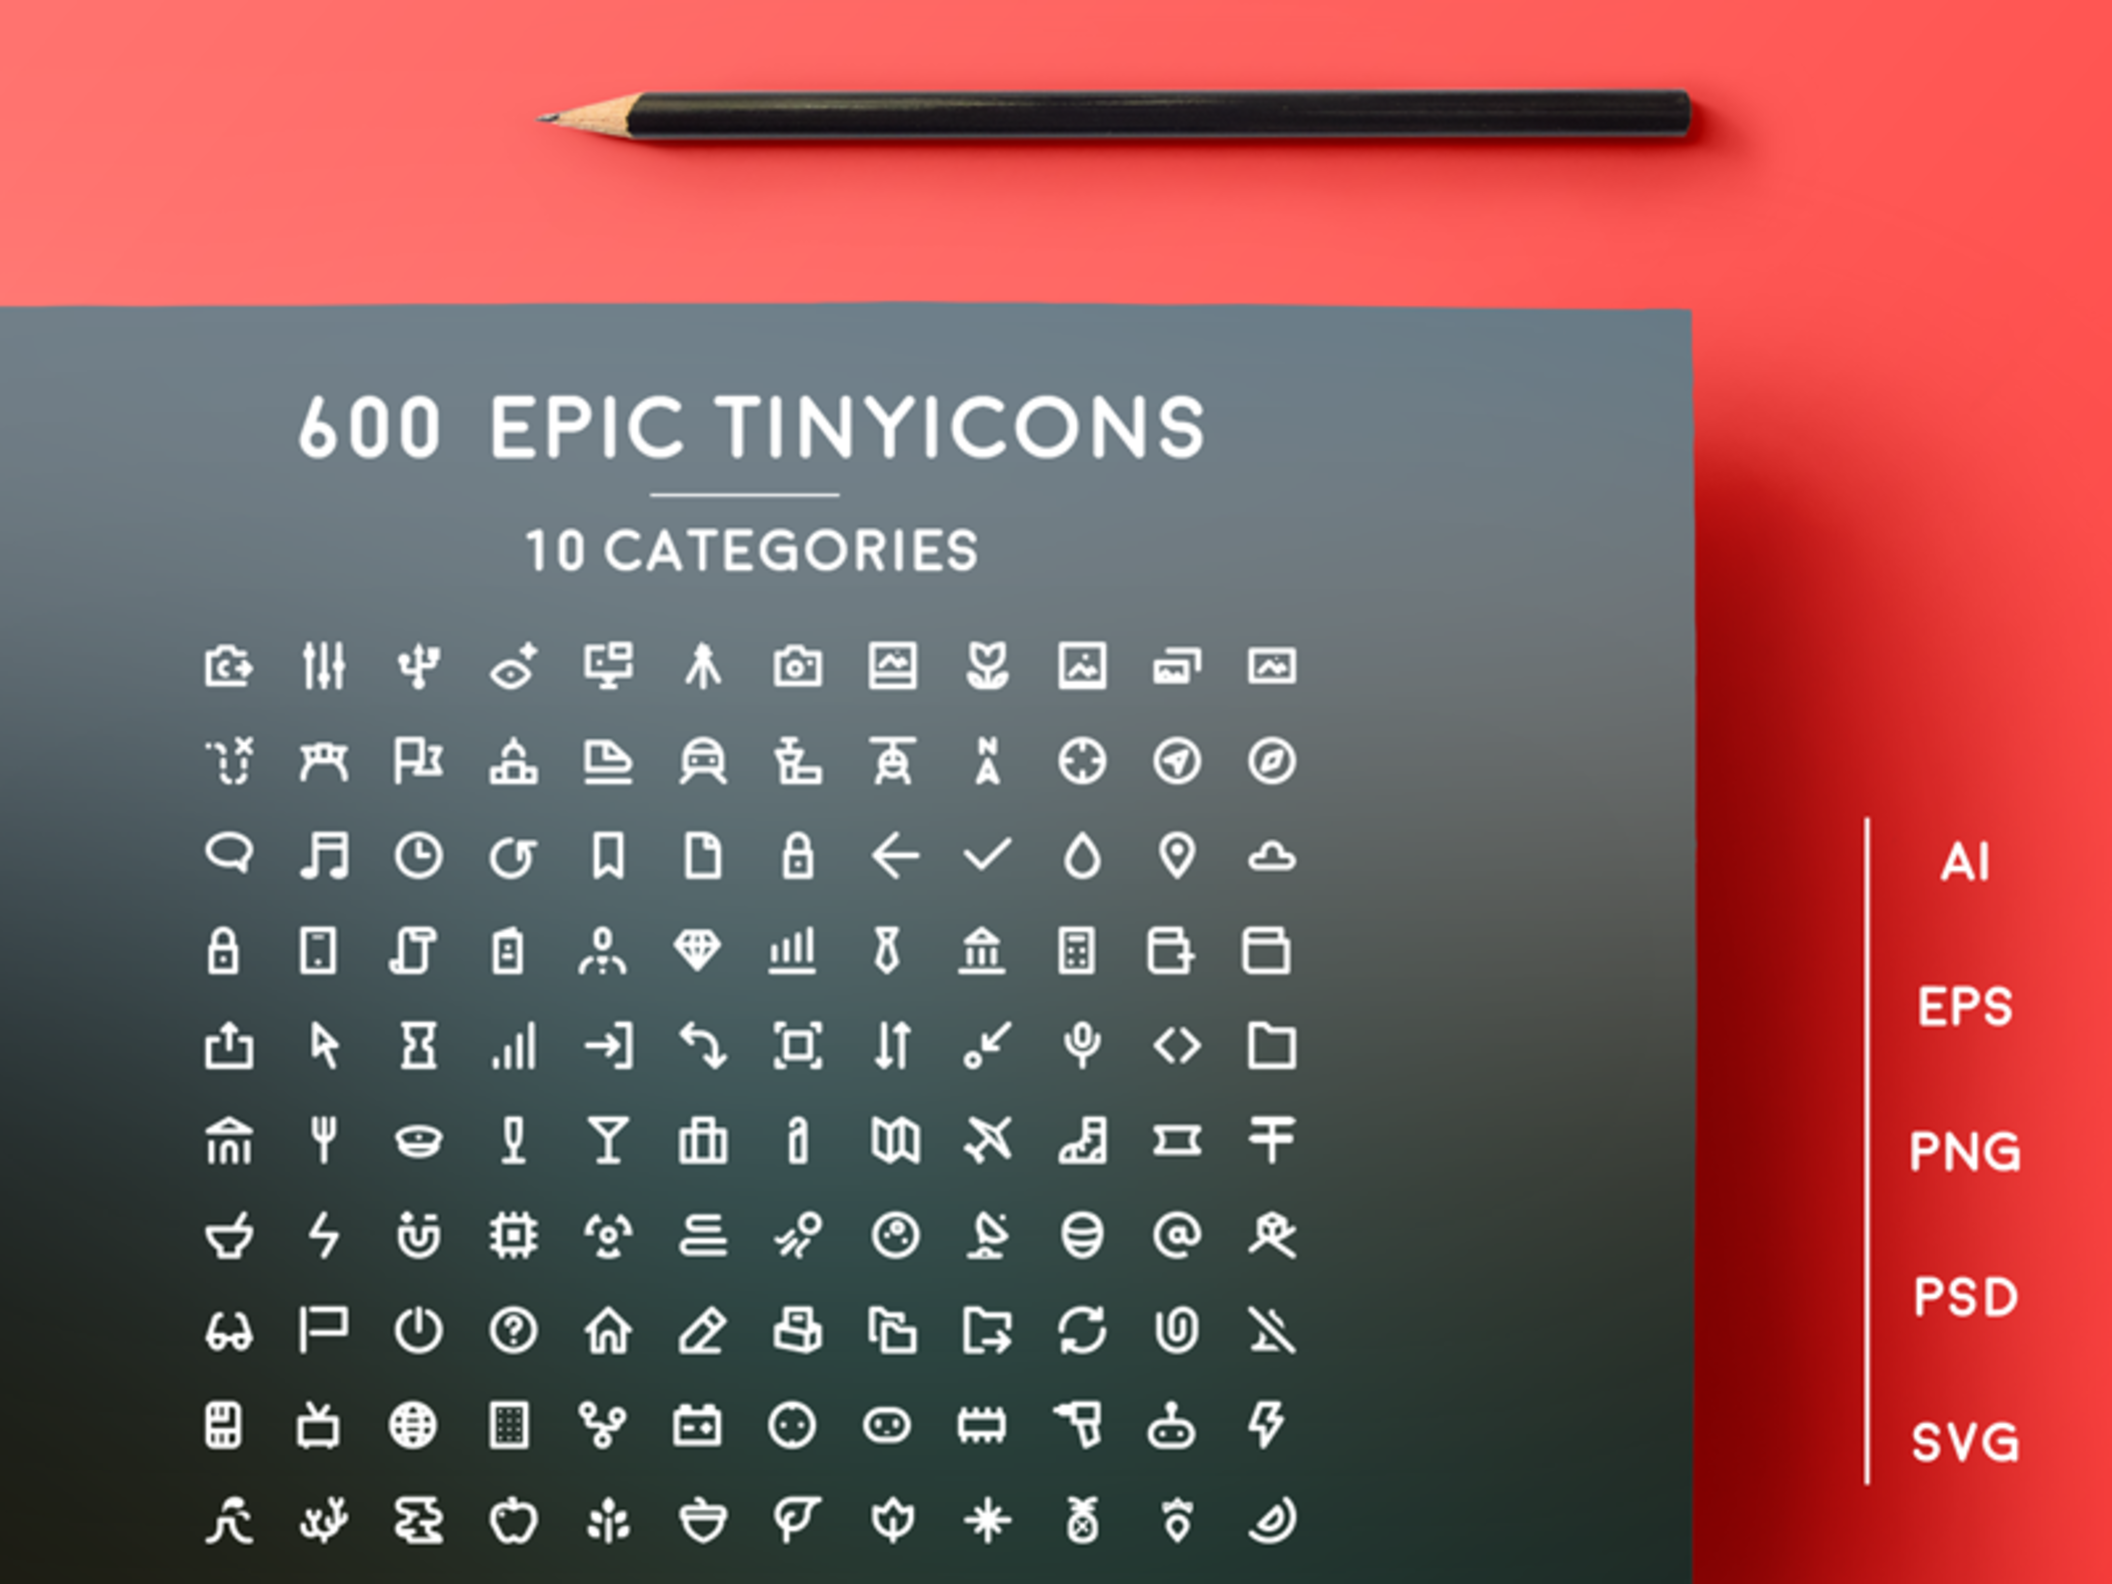 600 Epic Tiny Icons